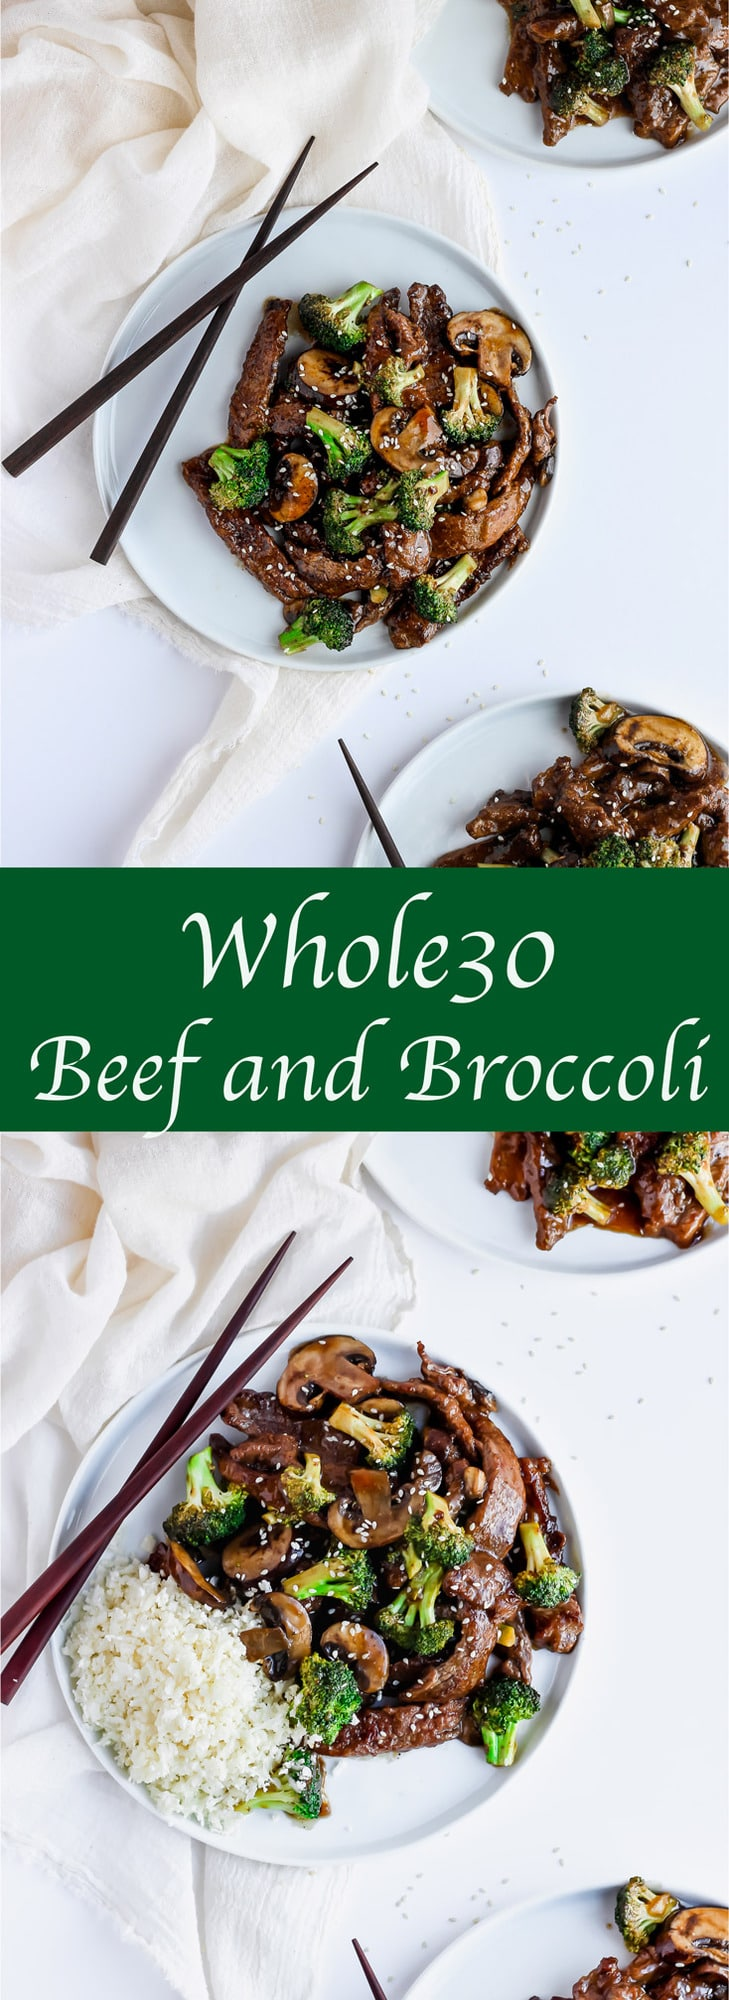 Whole30 Beef and Broccoli - the perfect weeknight meal!